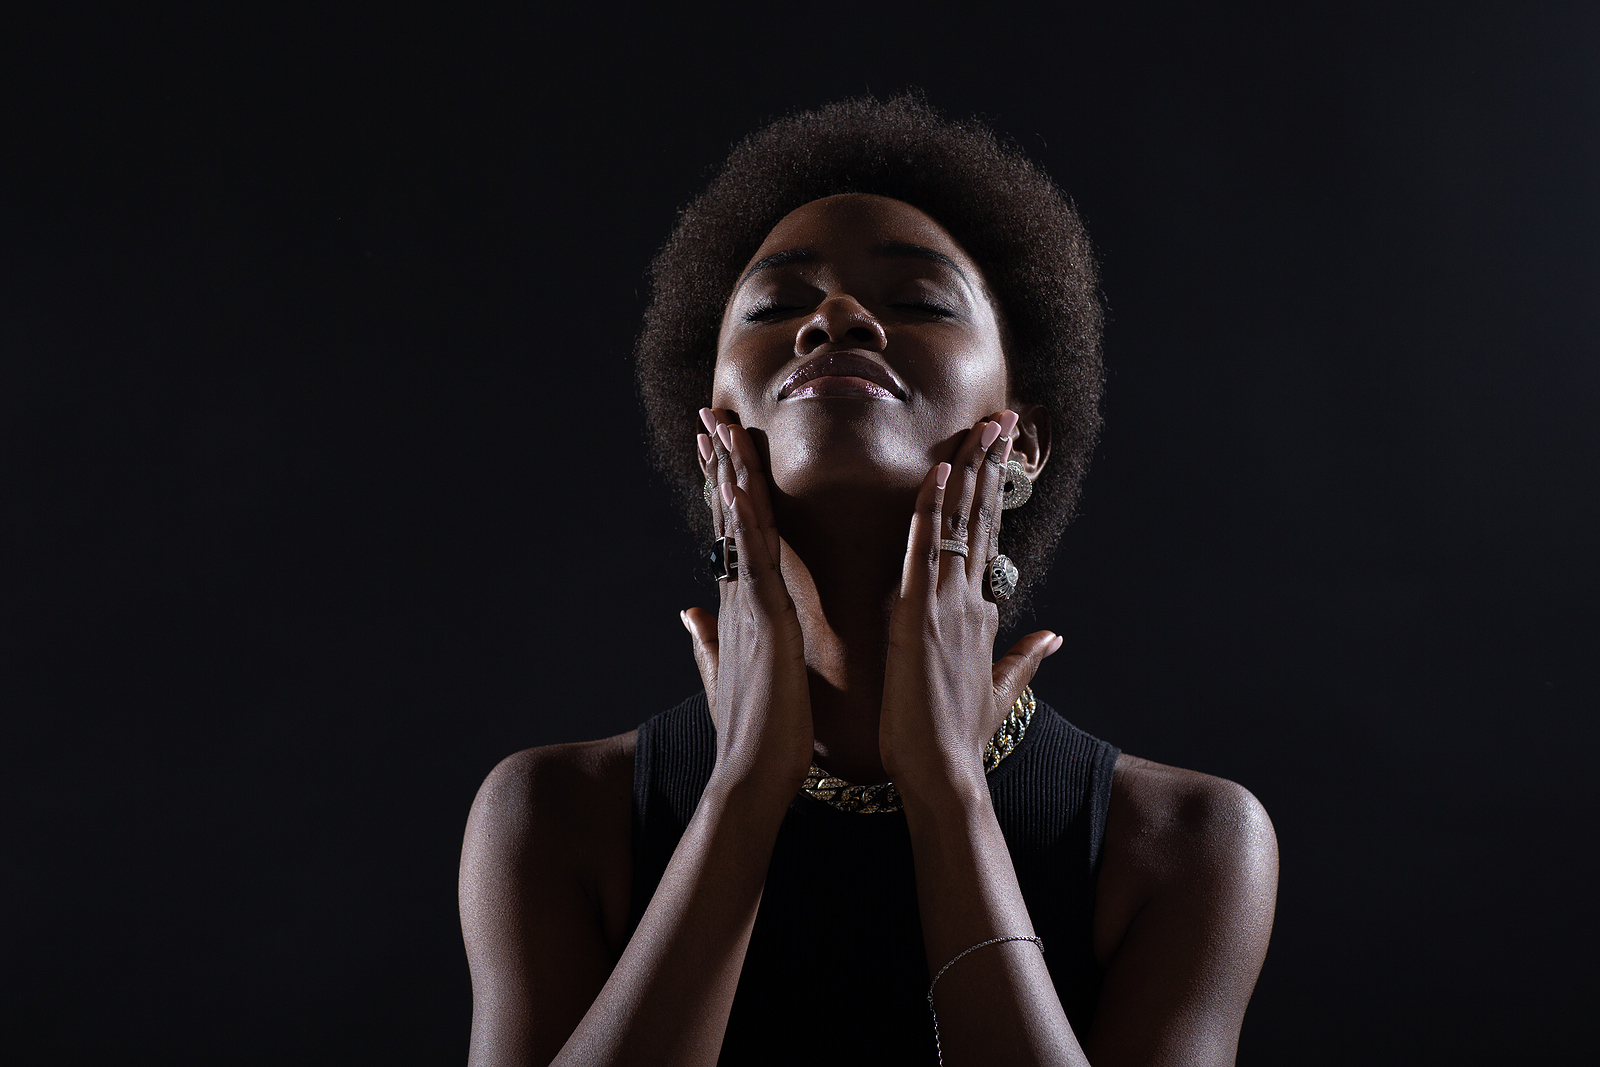 Black woman putting hands on face. When you're able to gain acceptance of the moment and find a way to move forward, freedom is possible. Why not try acceptance and commitment therapy in Detroit, MI. Our online therapists would love to help via online therapy in Michigan. Call now and begin act therapy soon!